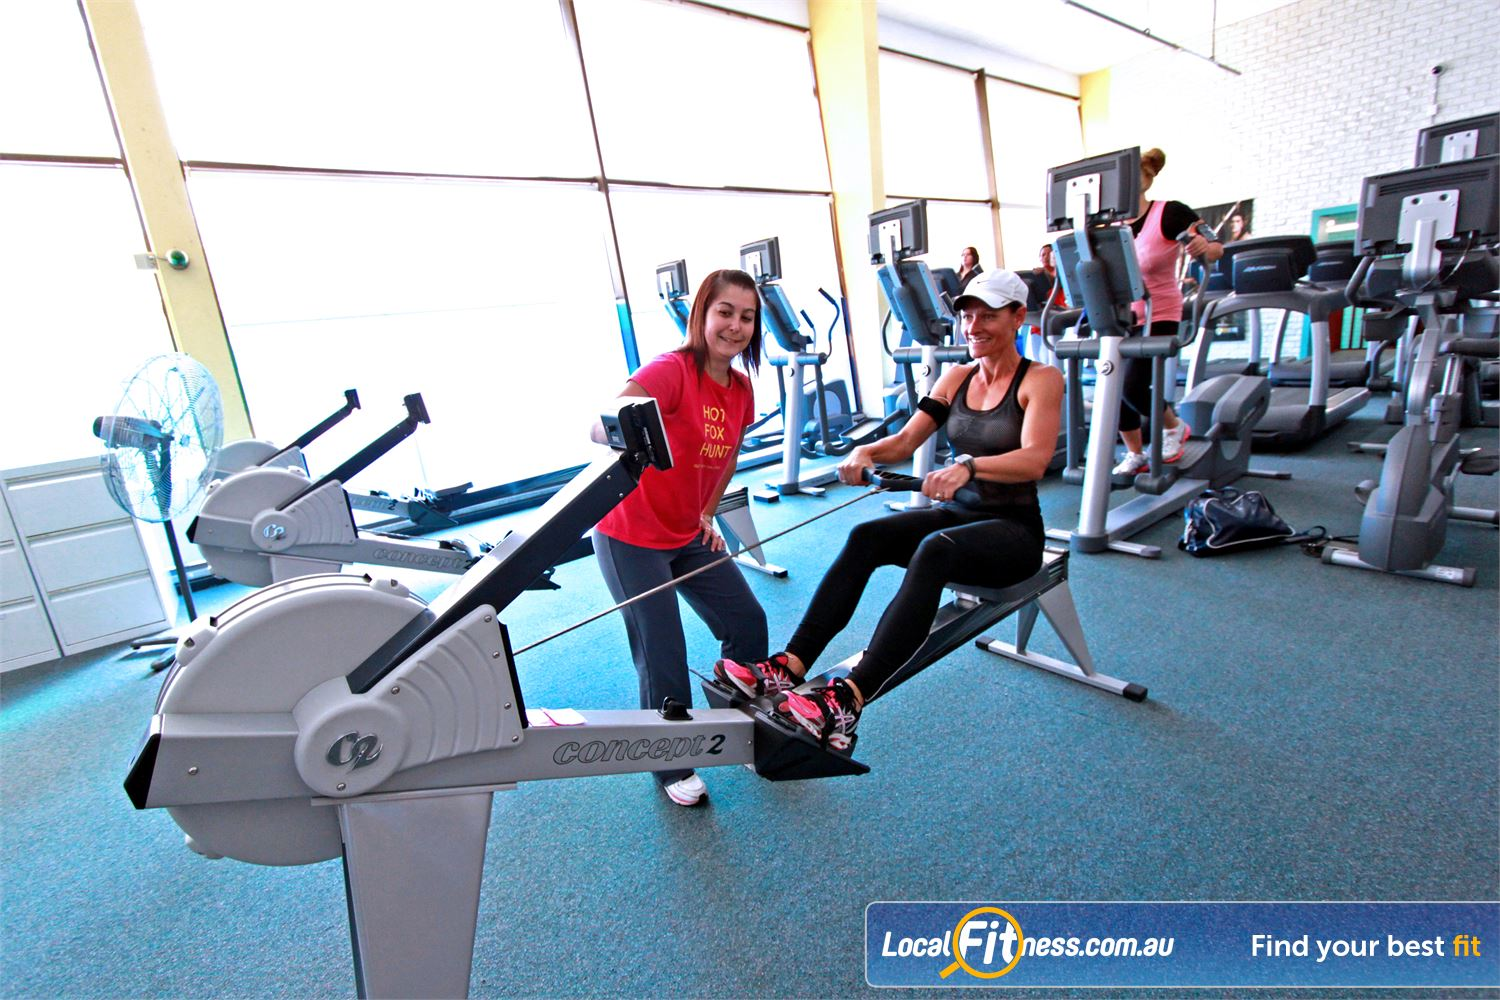 Fernwood Fitness Liverpool Vary your workout with our HUGE range of cardio, including indoor rowing in Liverpool.